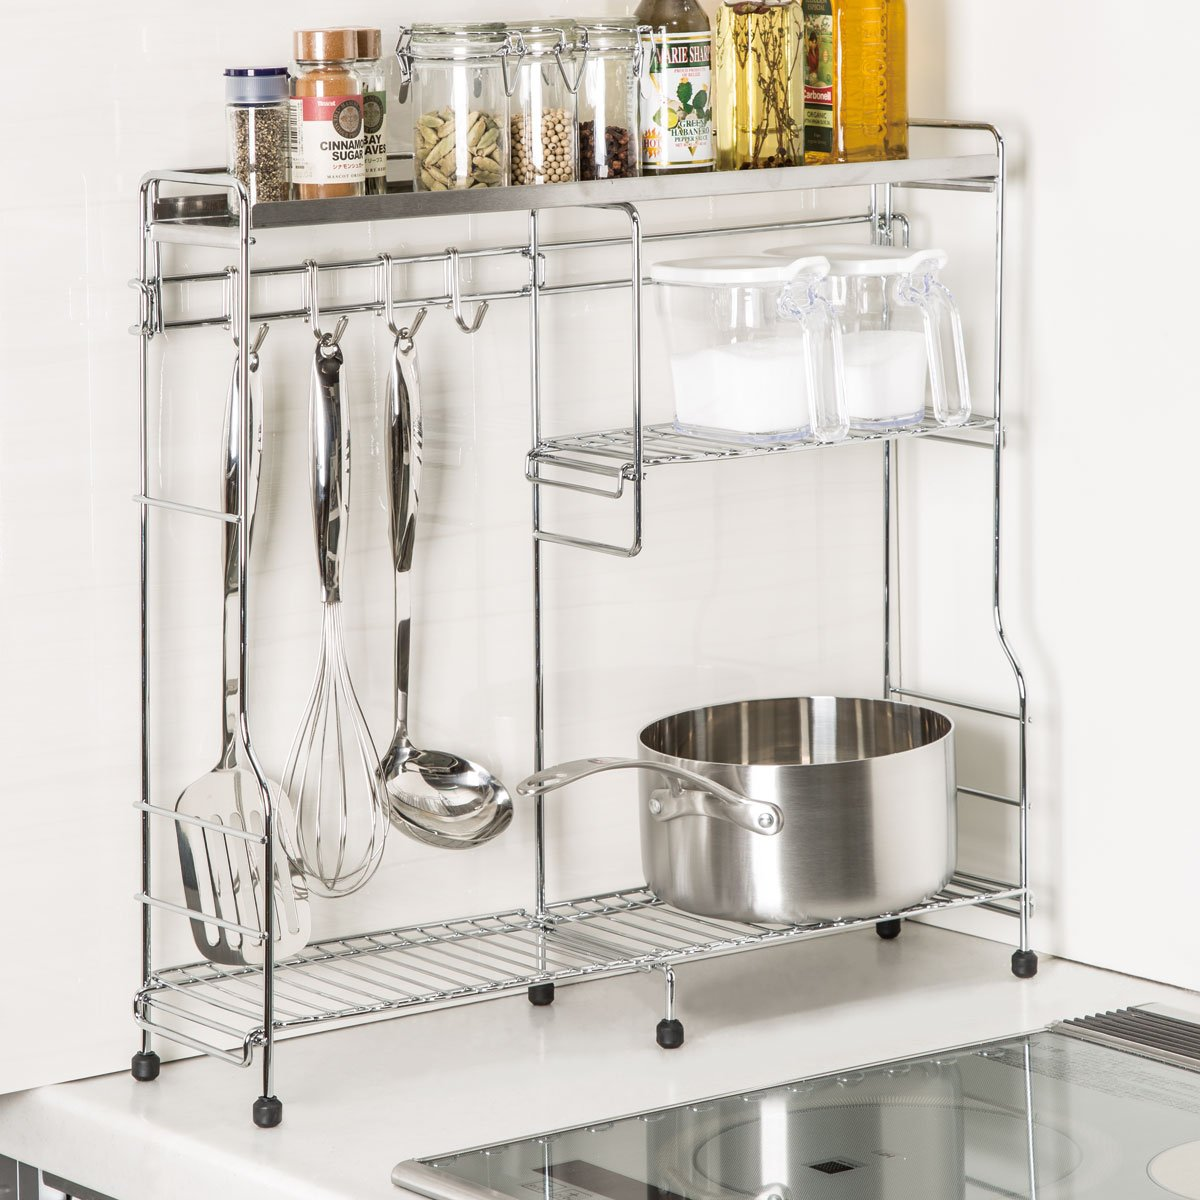 Counter & Spice Rack